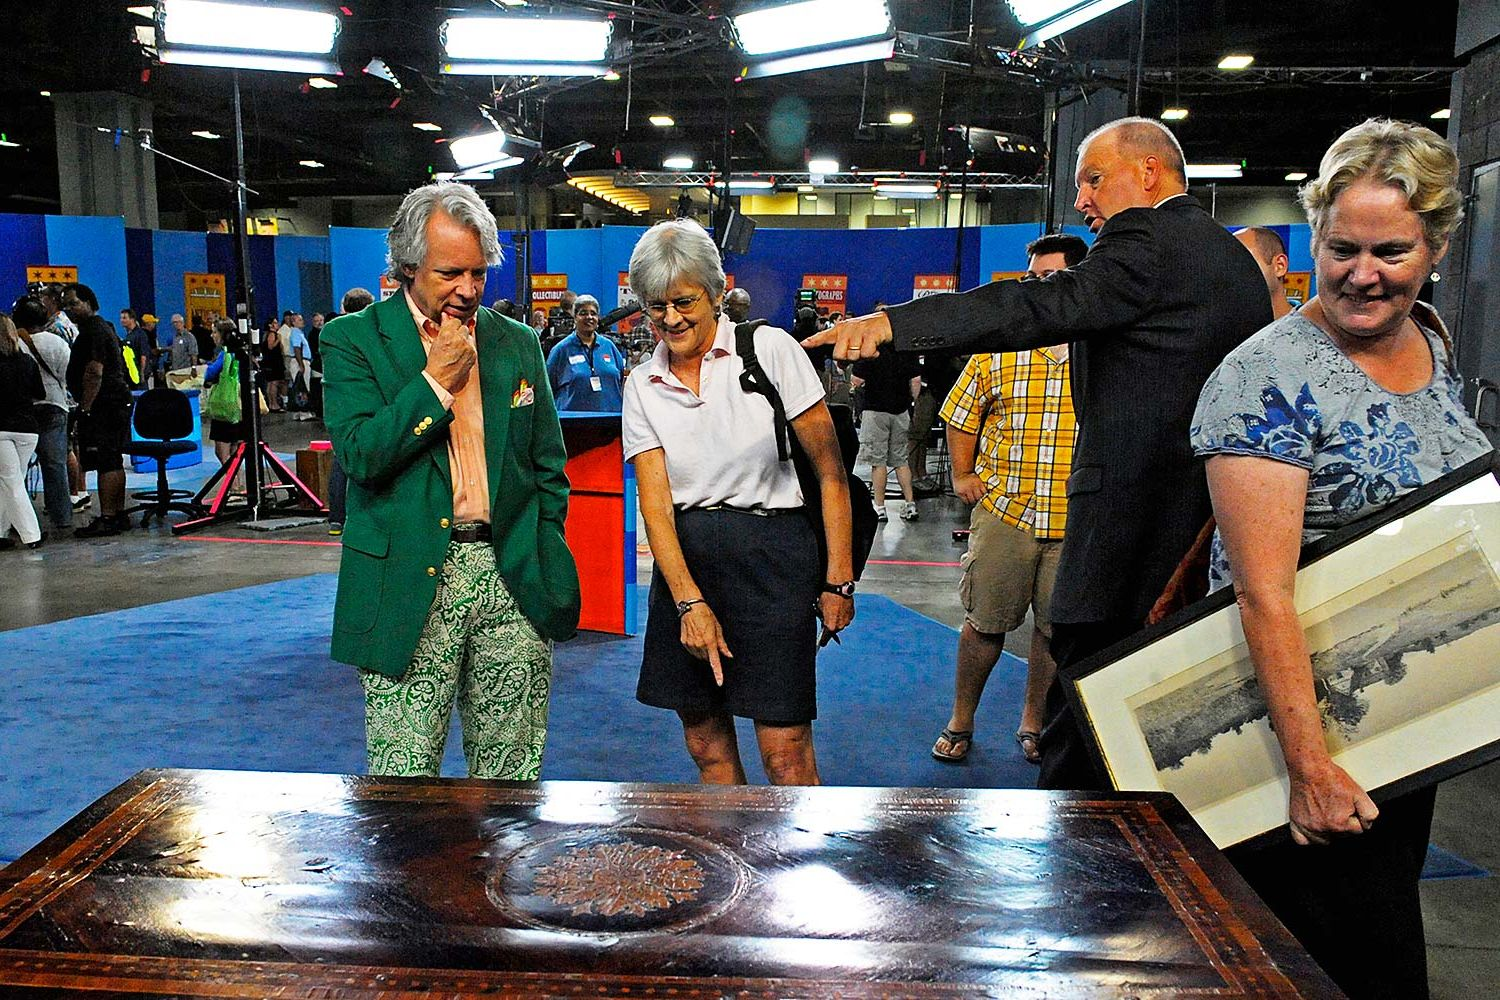 How to Get Tickets to Appear on Antiques Roadshow